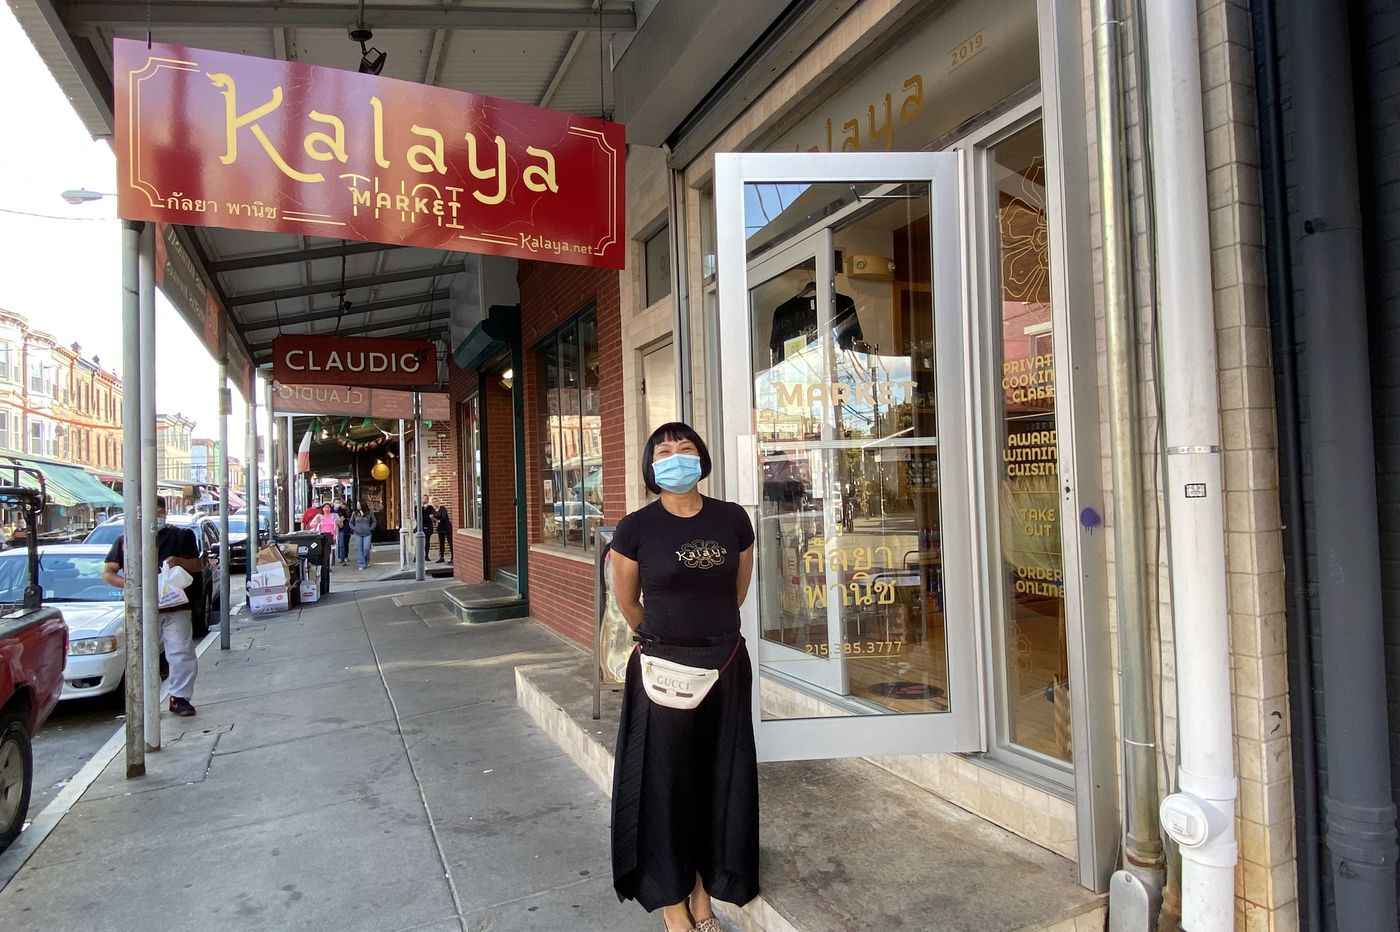 Kalaya opens a Thai market near the restaurant in South Philadelphia